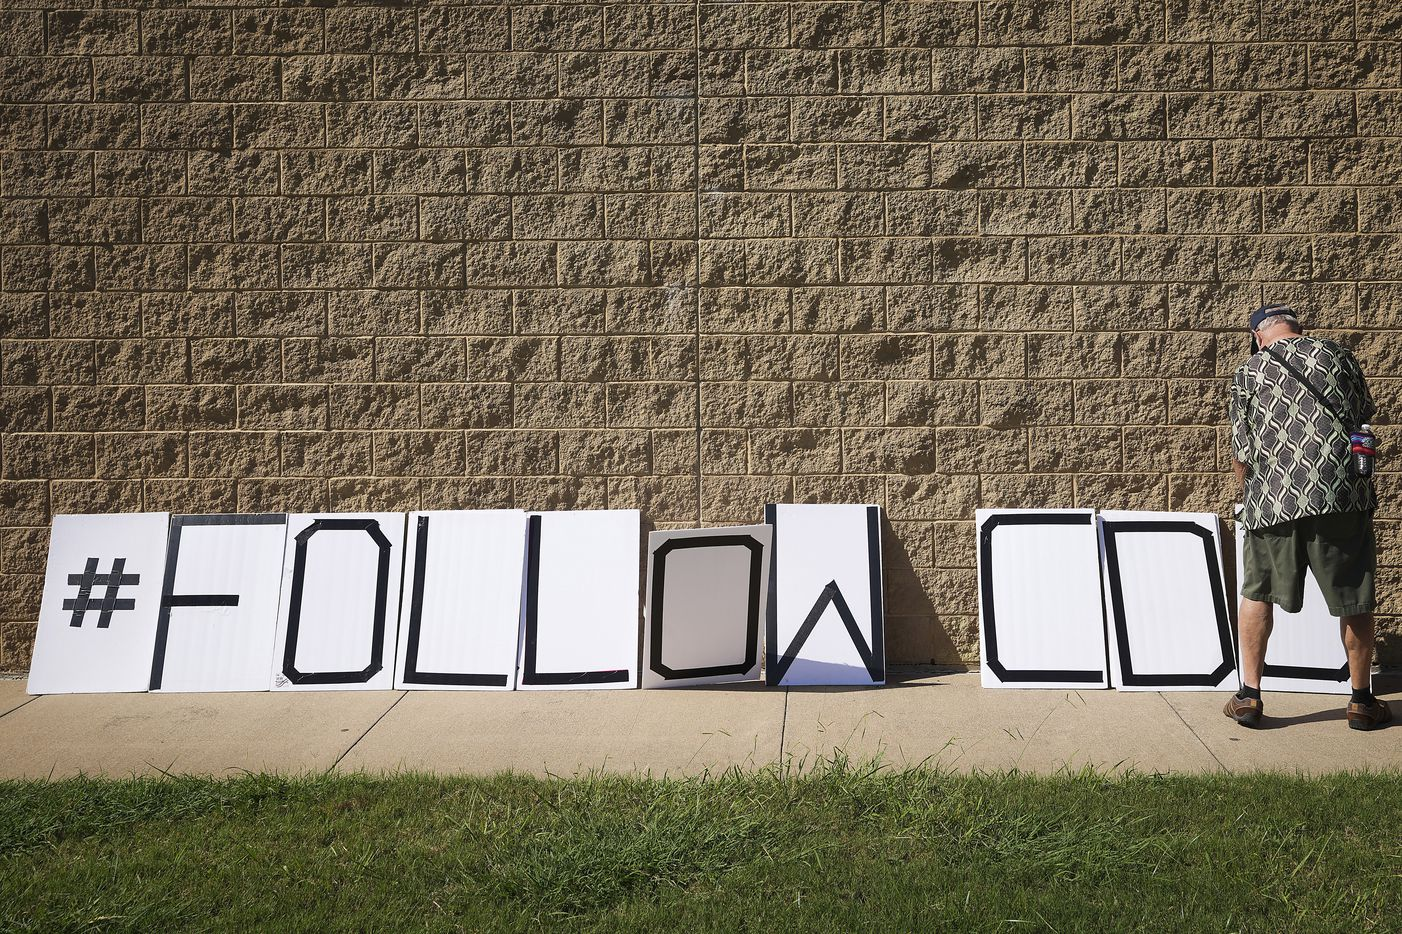 Supporters of mask mandates set out signs outside the Carroll ISD school board meeting on Monday, Aug. 23, 2021, in Southlake, Texas. (Smiley N. Pool/The Dallas Morning News)